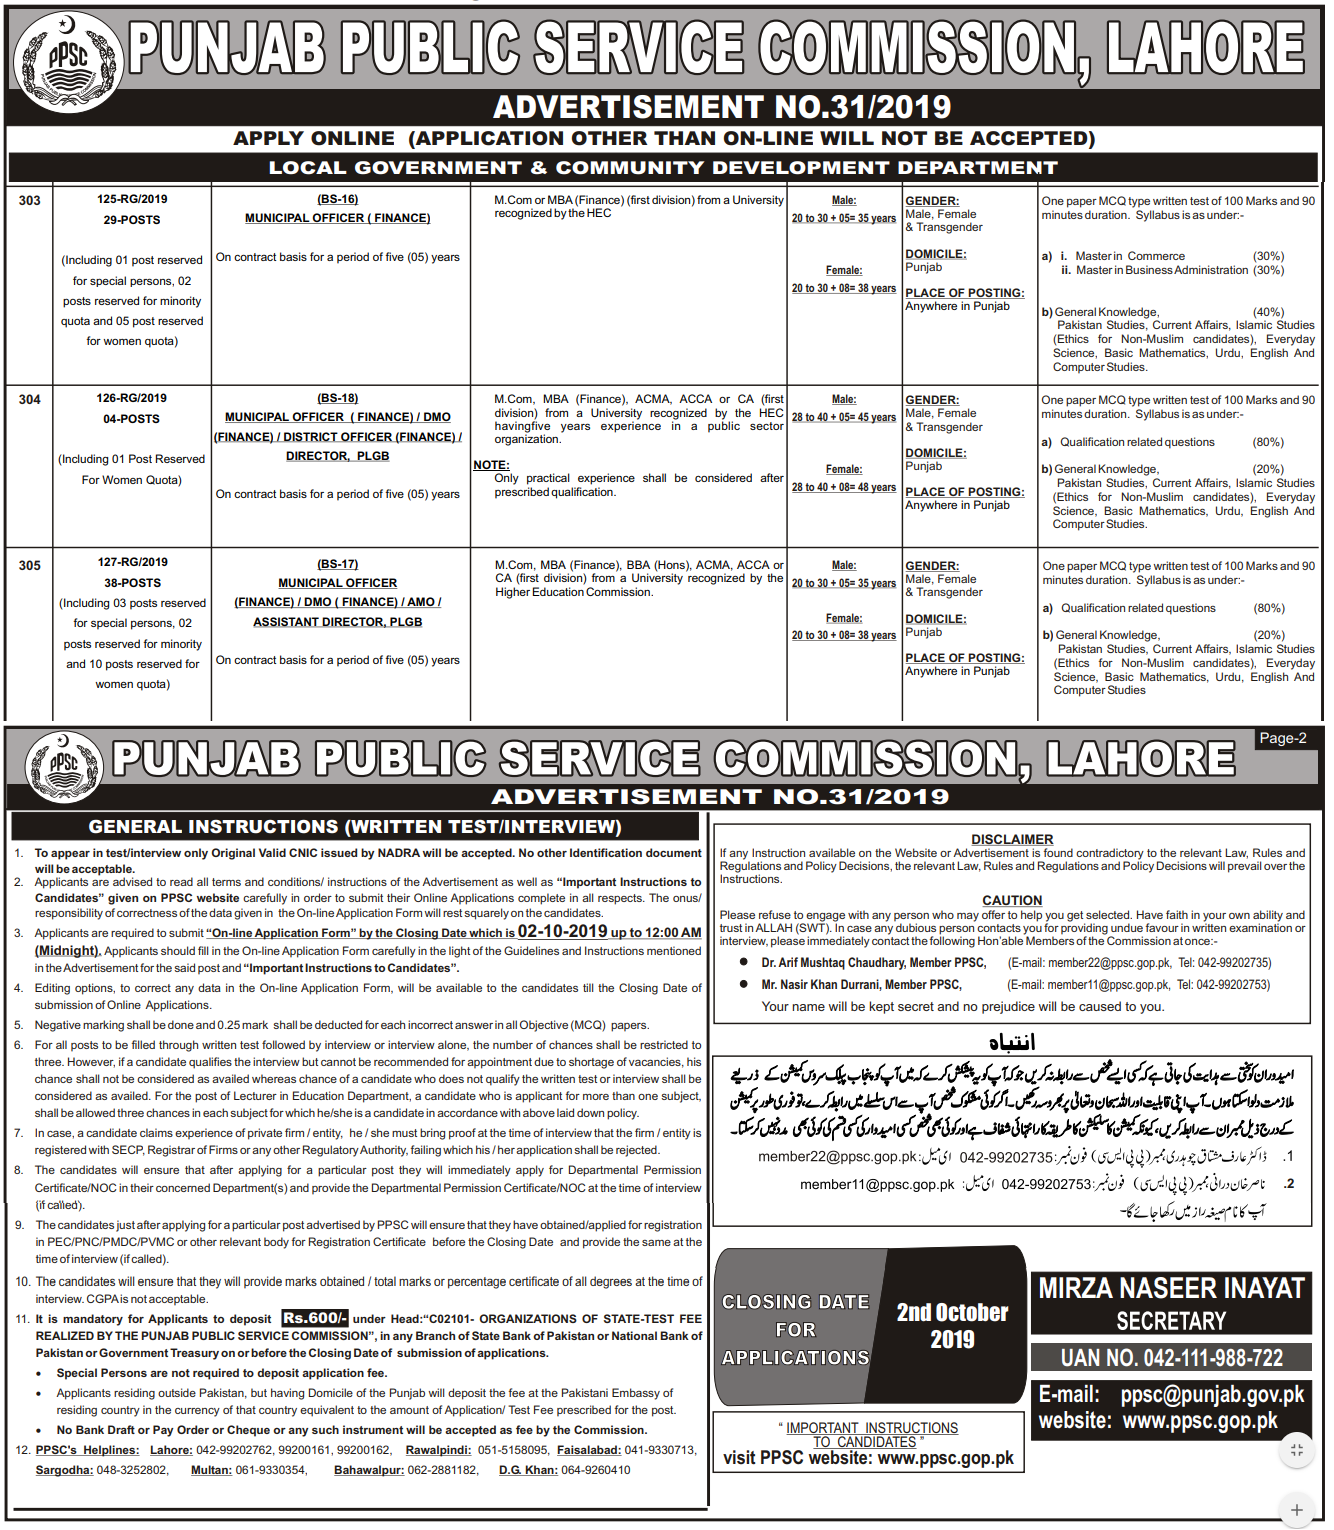 PPSC Jobs For M.COM and MBA Degree Holders  Vacancies 71